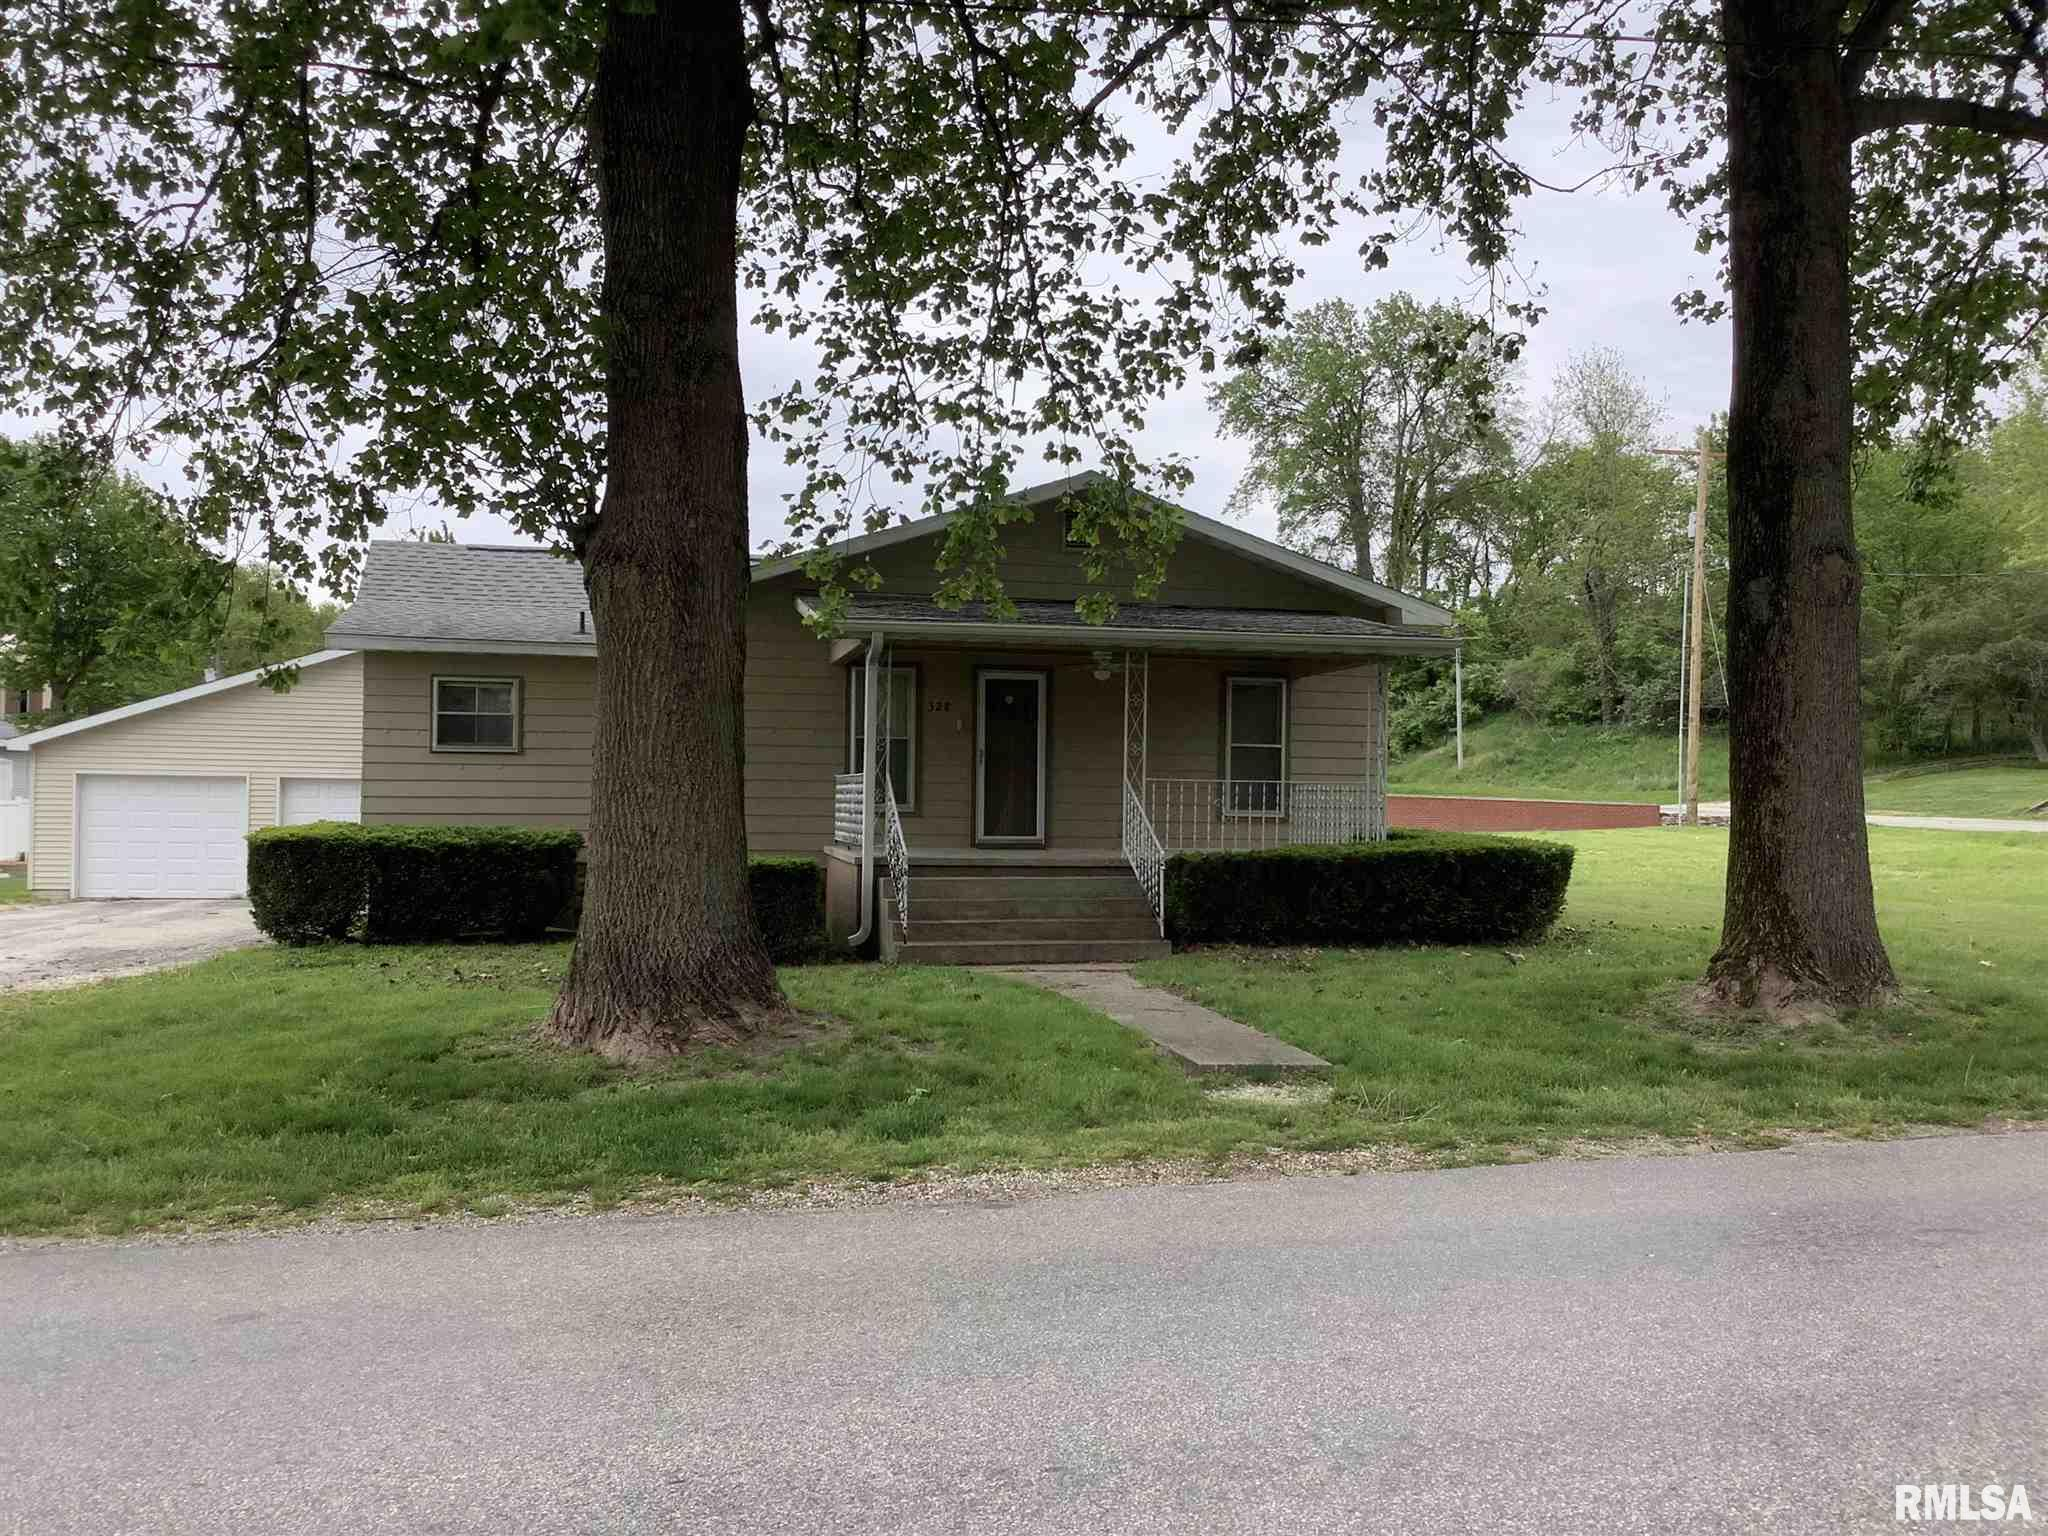 328 S PEARL Property Photo - Bluffs, IL real estate listing